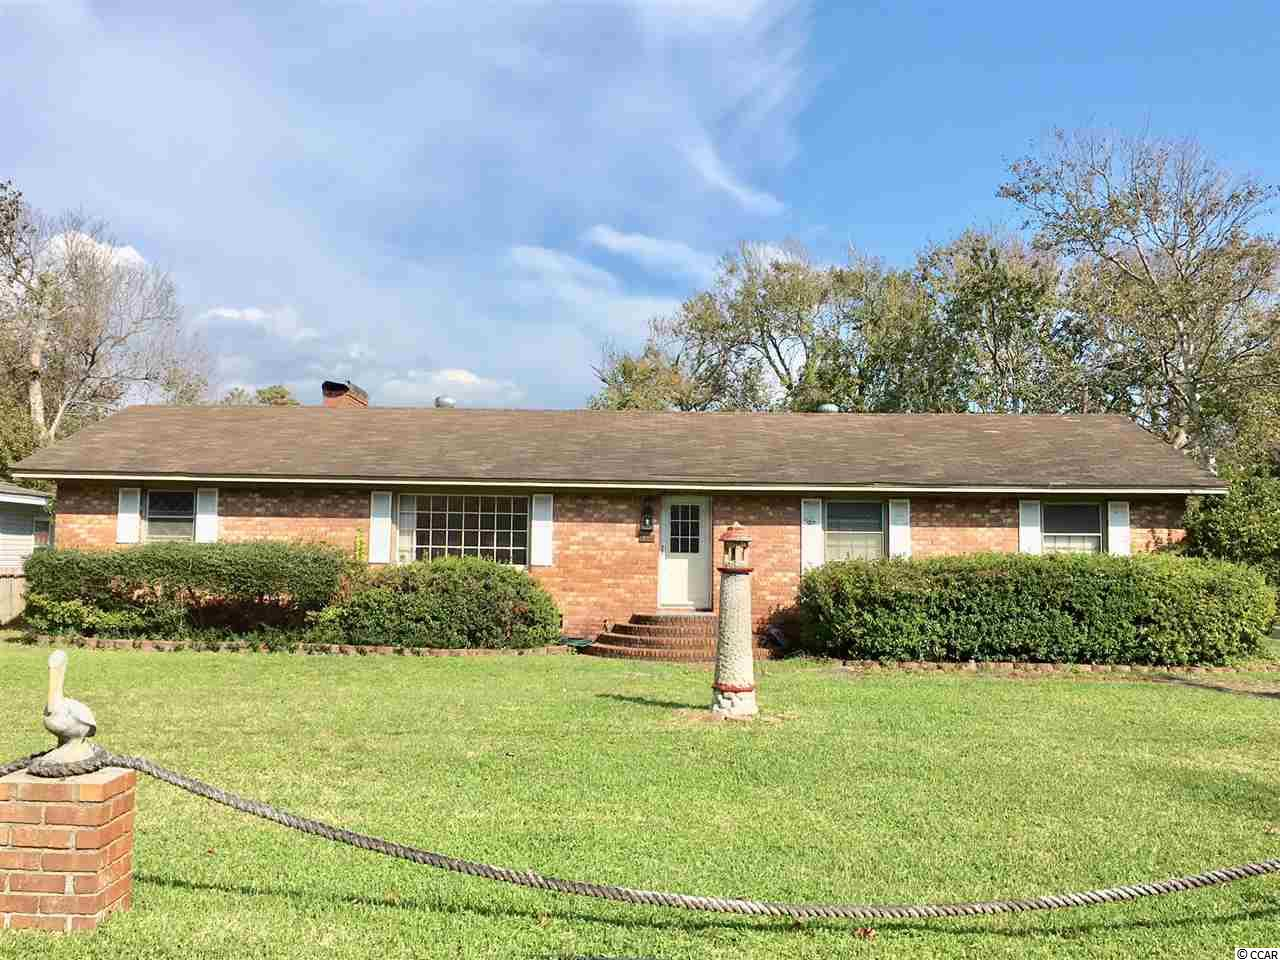 Lakewood house for sale in Surfside Beach, SC